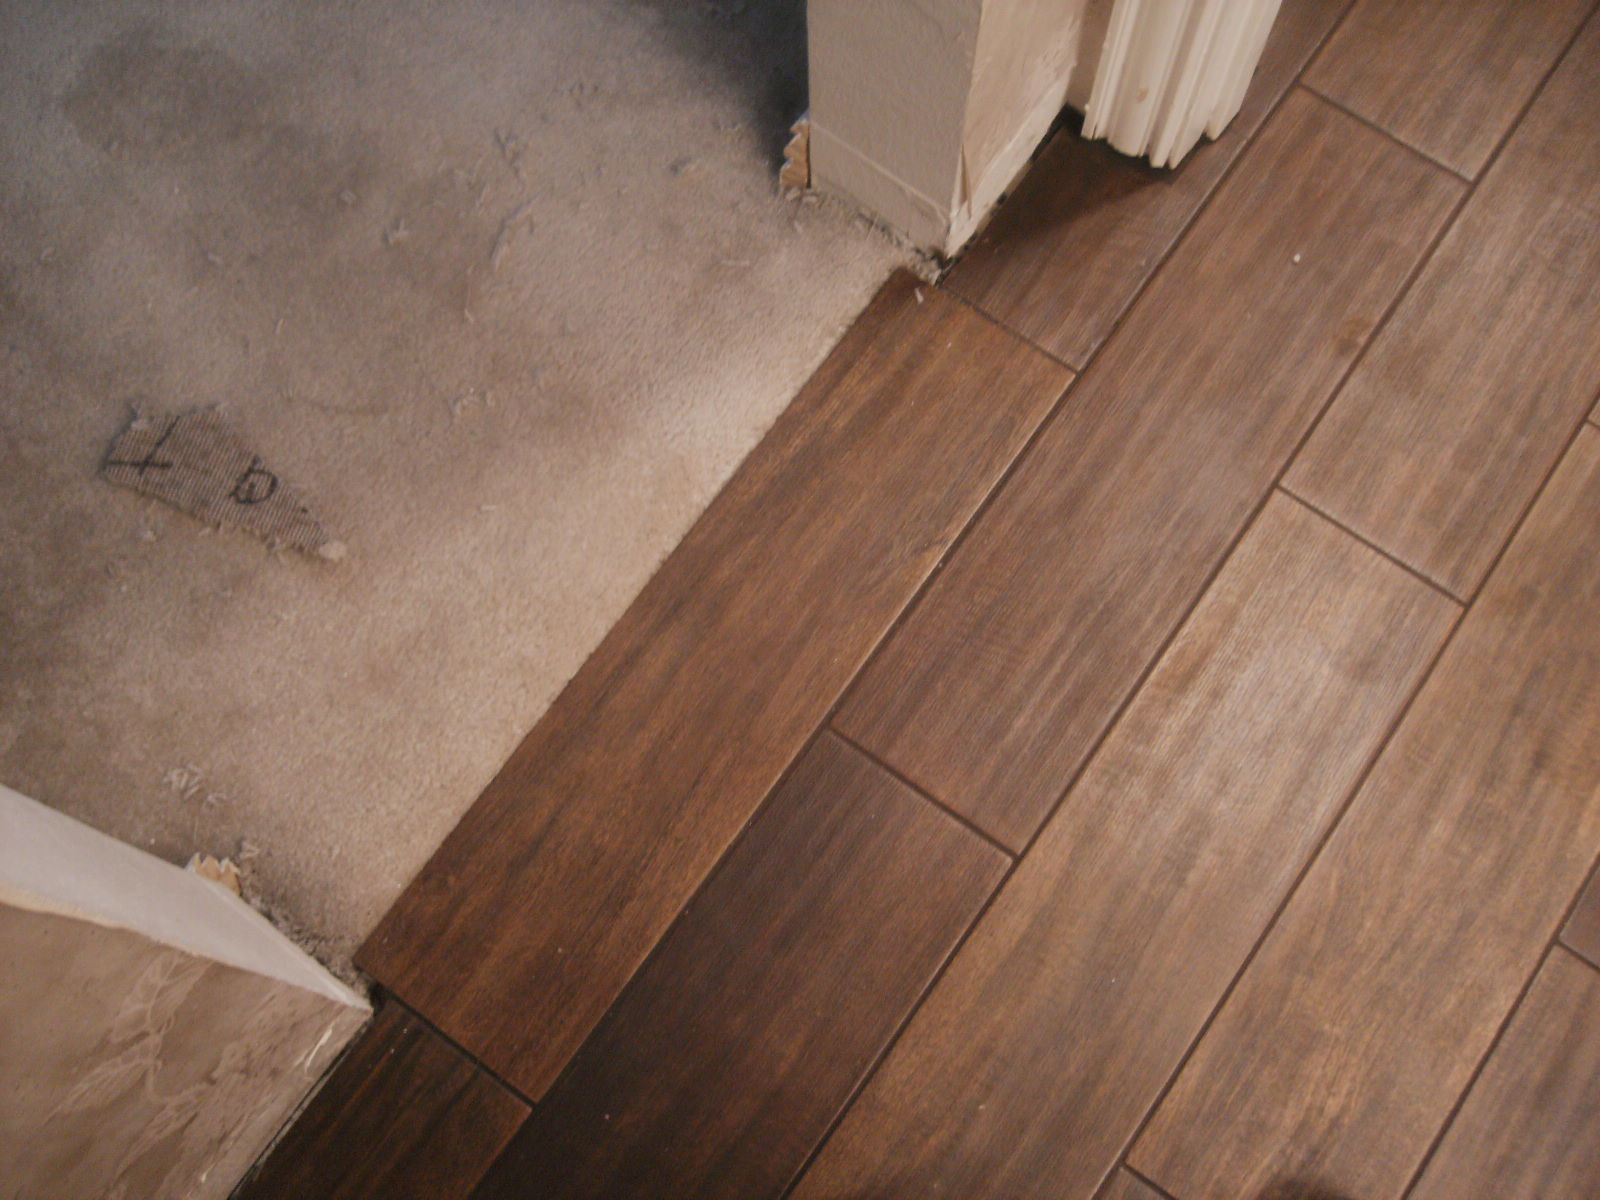 Is It Wood Flooring Or Is It Porcelain Tile Confessions Of A Tile Setter